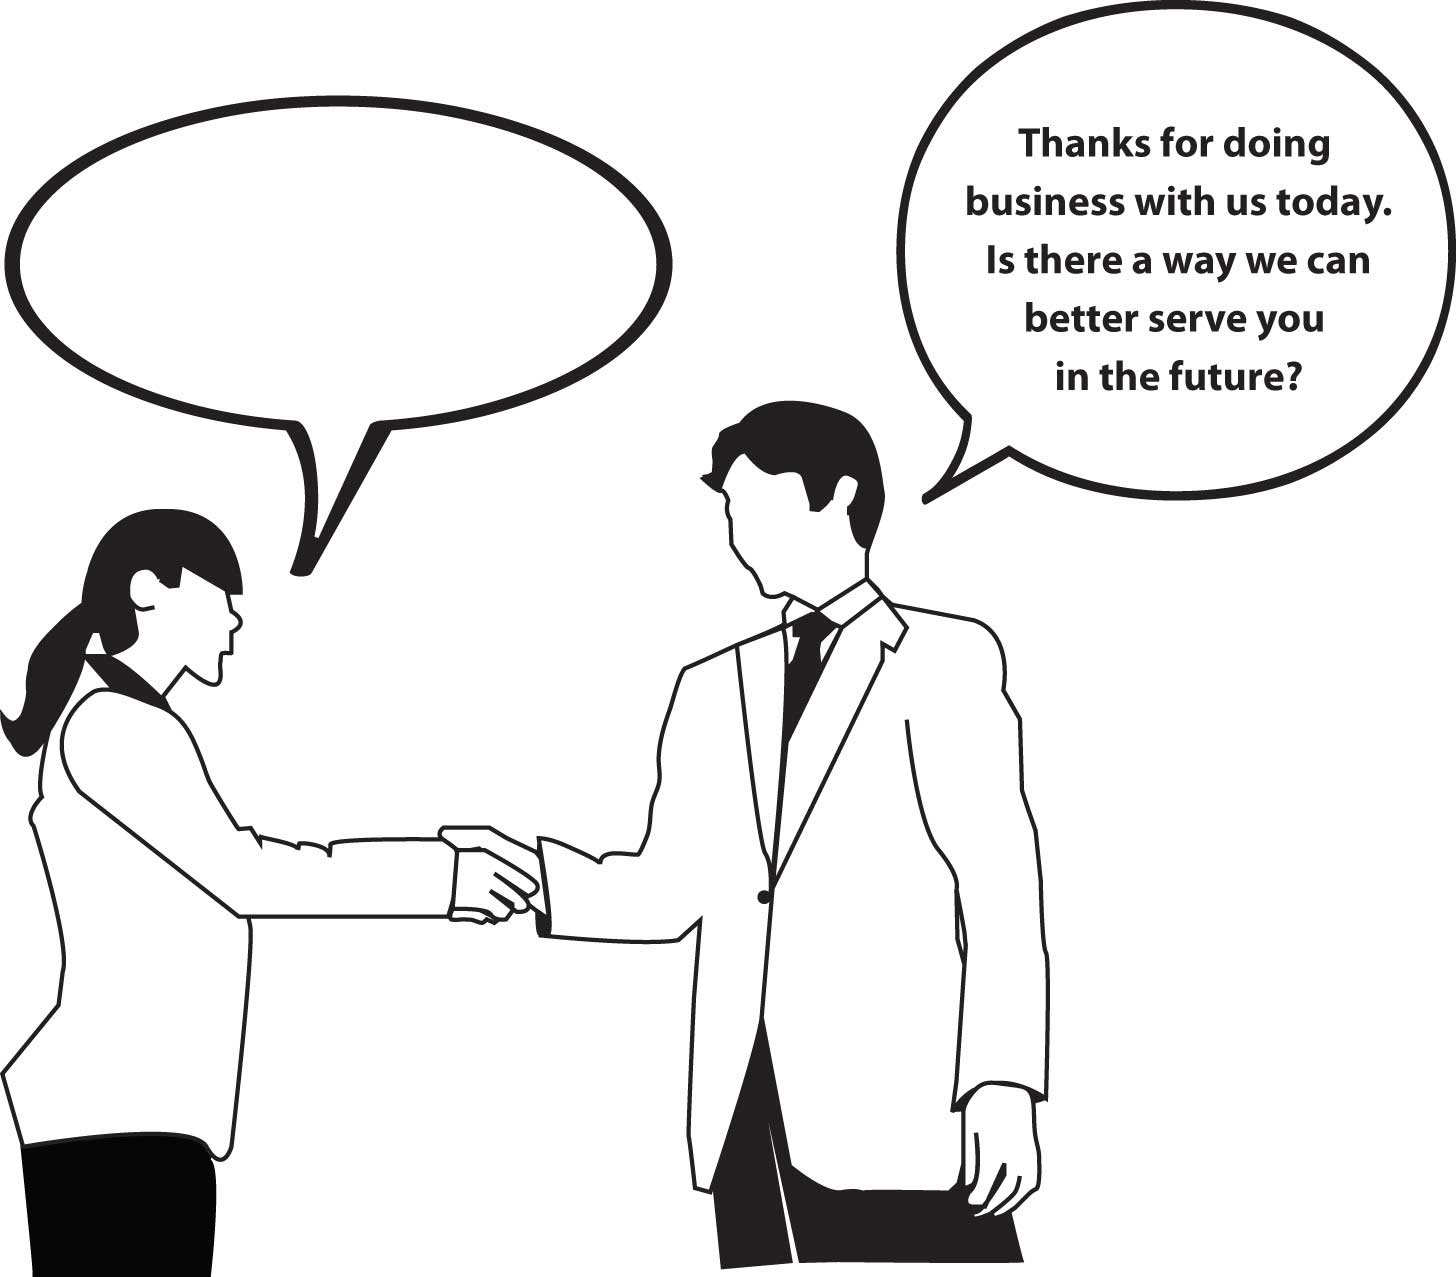 A cartoon of a man shaking a woman's hand saying